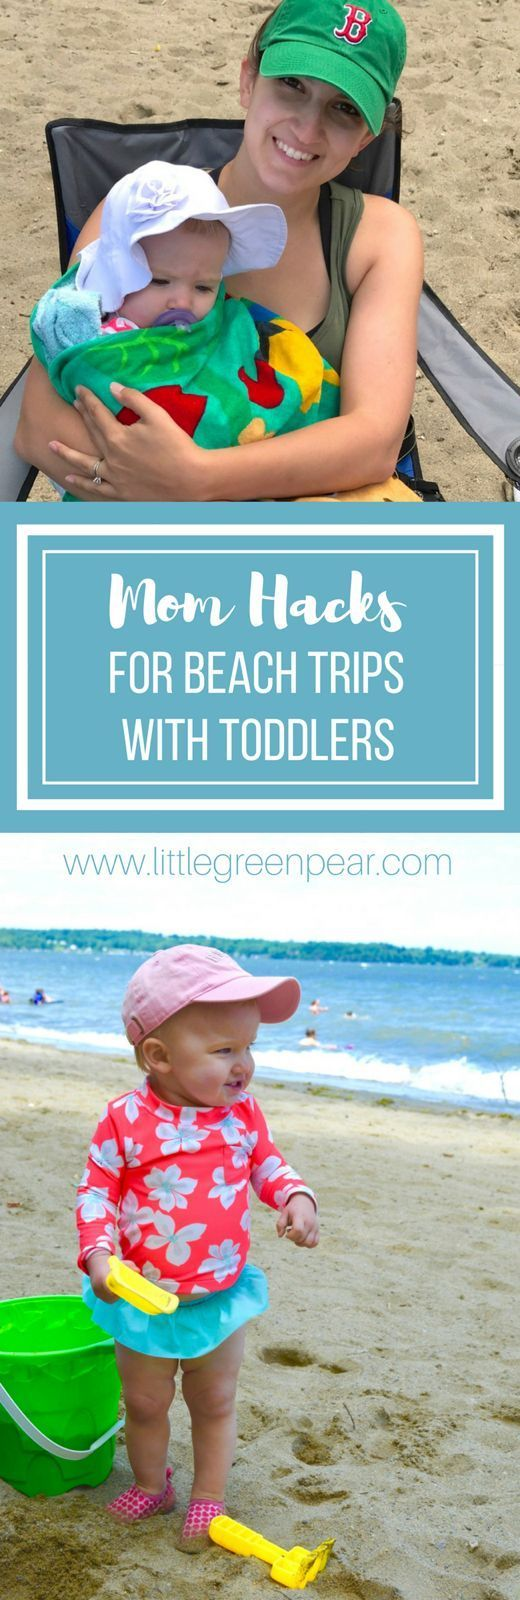 Mom Hacks For A Beach Day With Your Toddler!